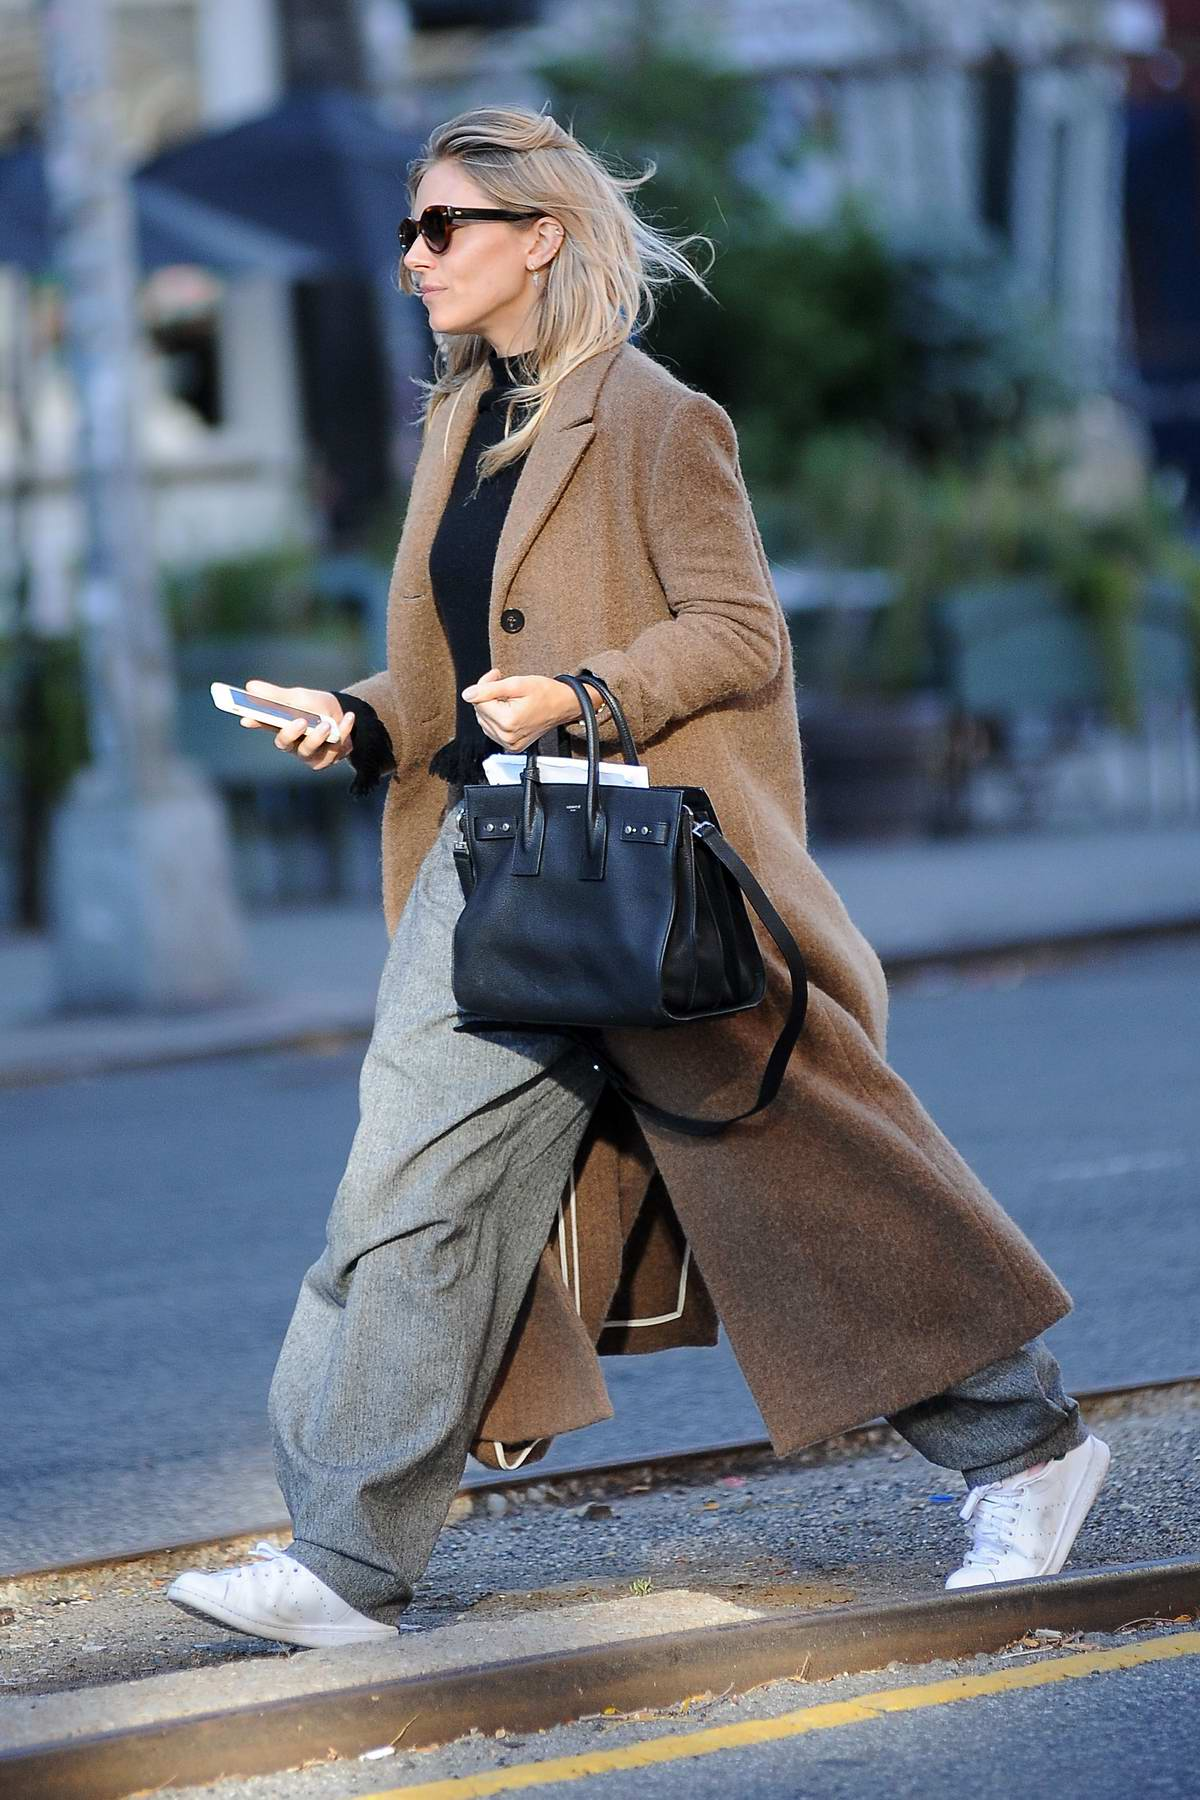 Sienna Miller in a overcoat spotted running errands in New York City